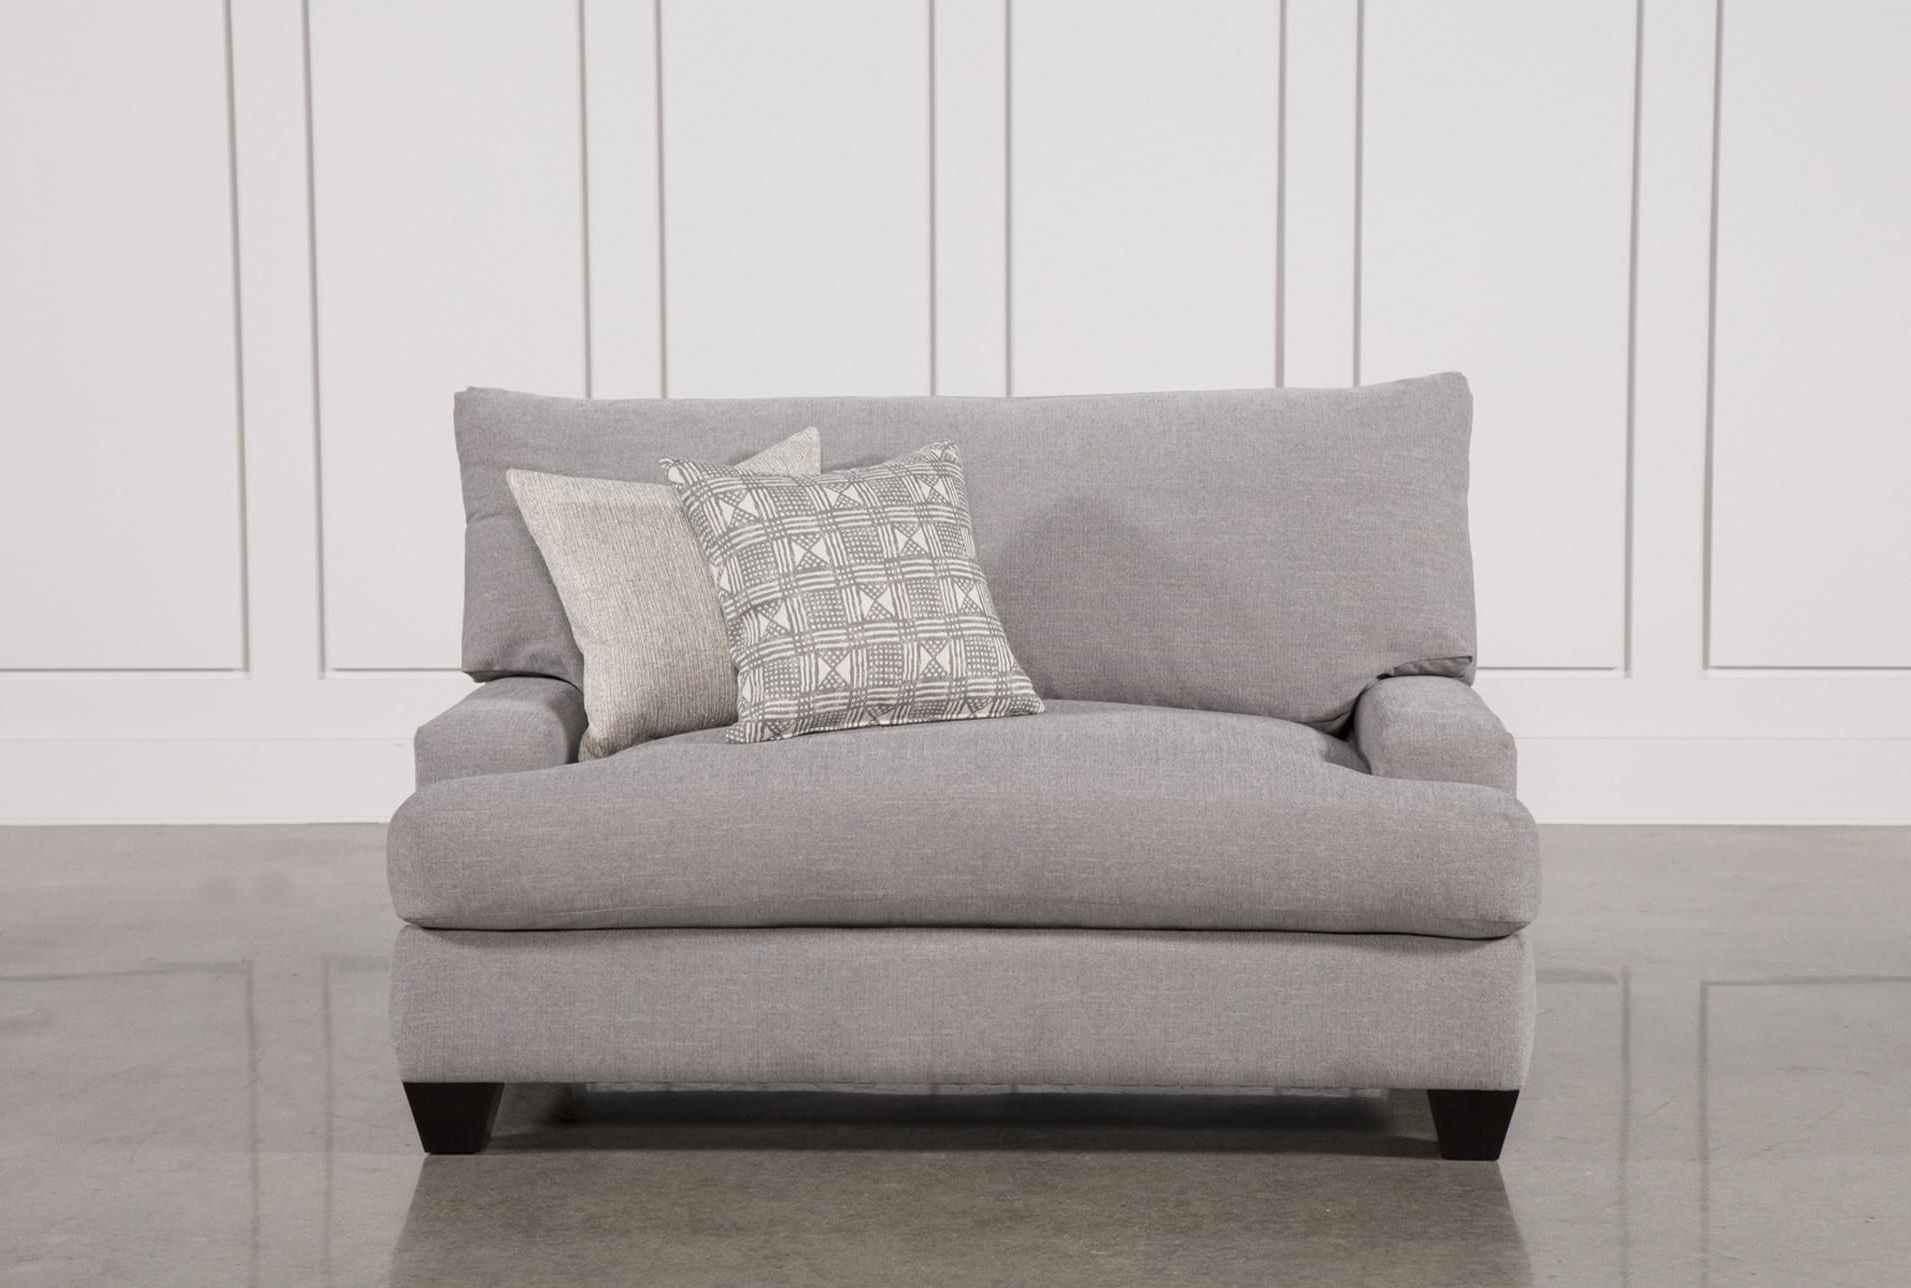 Styling Chairs For Most Popular Harper Down Oversized Sofa Chairs (View 18 of 20)